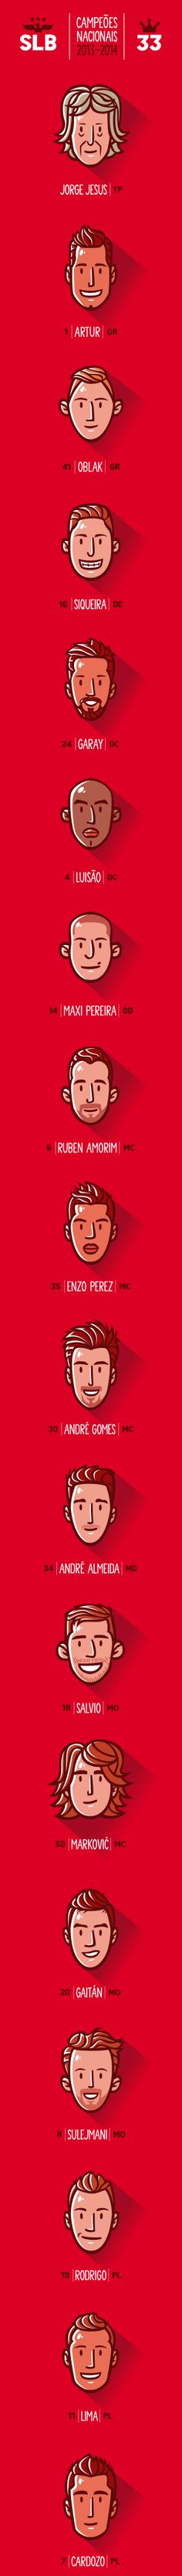 SLB 2013/14 by hugraphic ©, via Behance